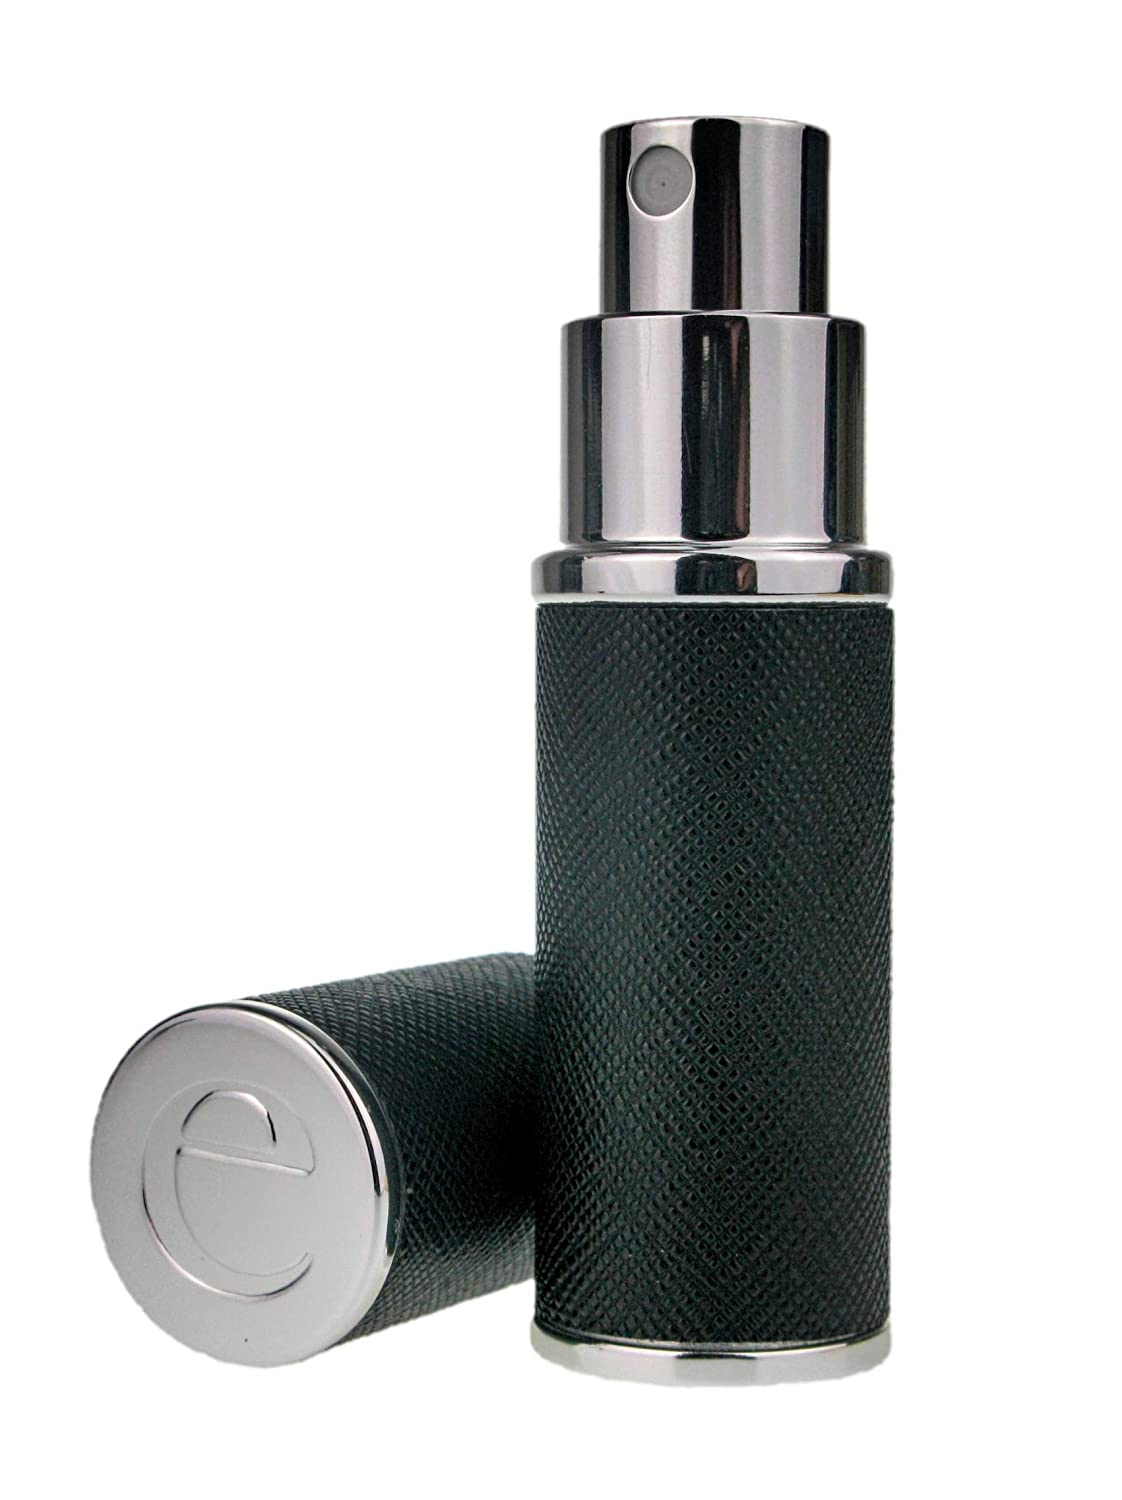 The Essential Atomizer Co. Saffiano Black Leather with Silver Finish Perfume or Aftershave Refillable Travel Atomiser, 8ml, Includes Funnel and Gift Box